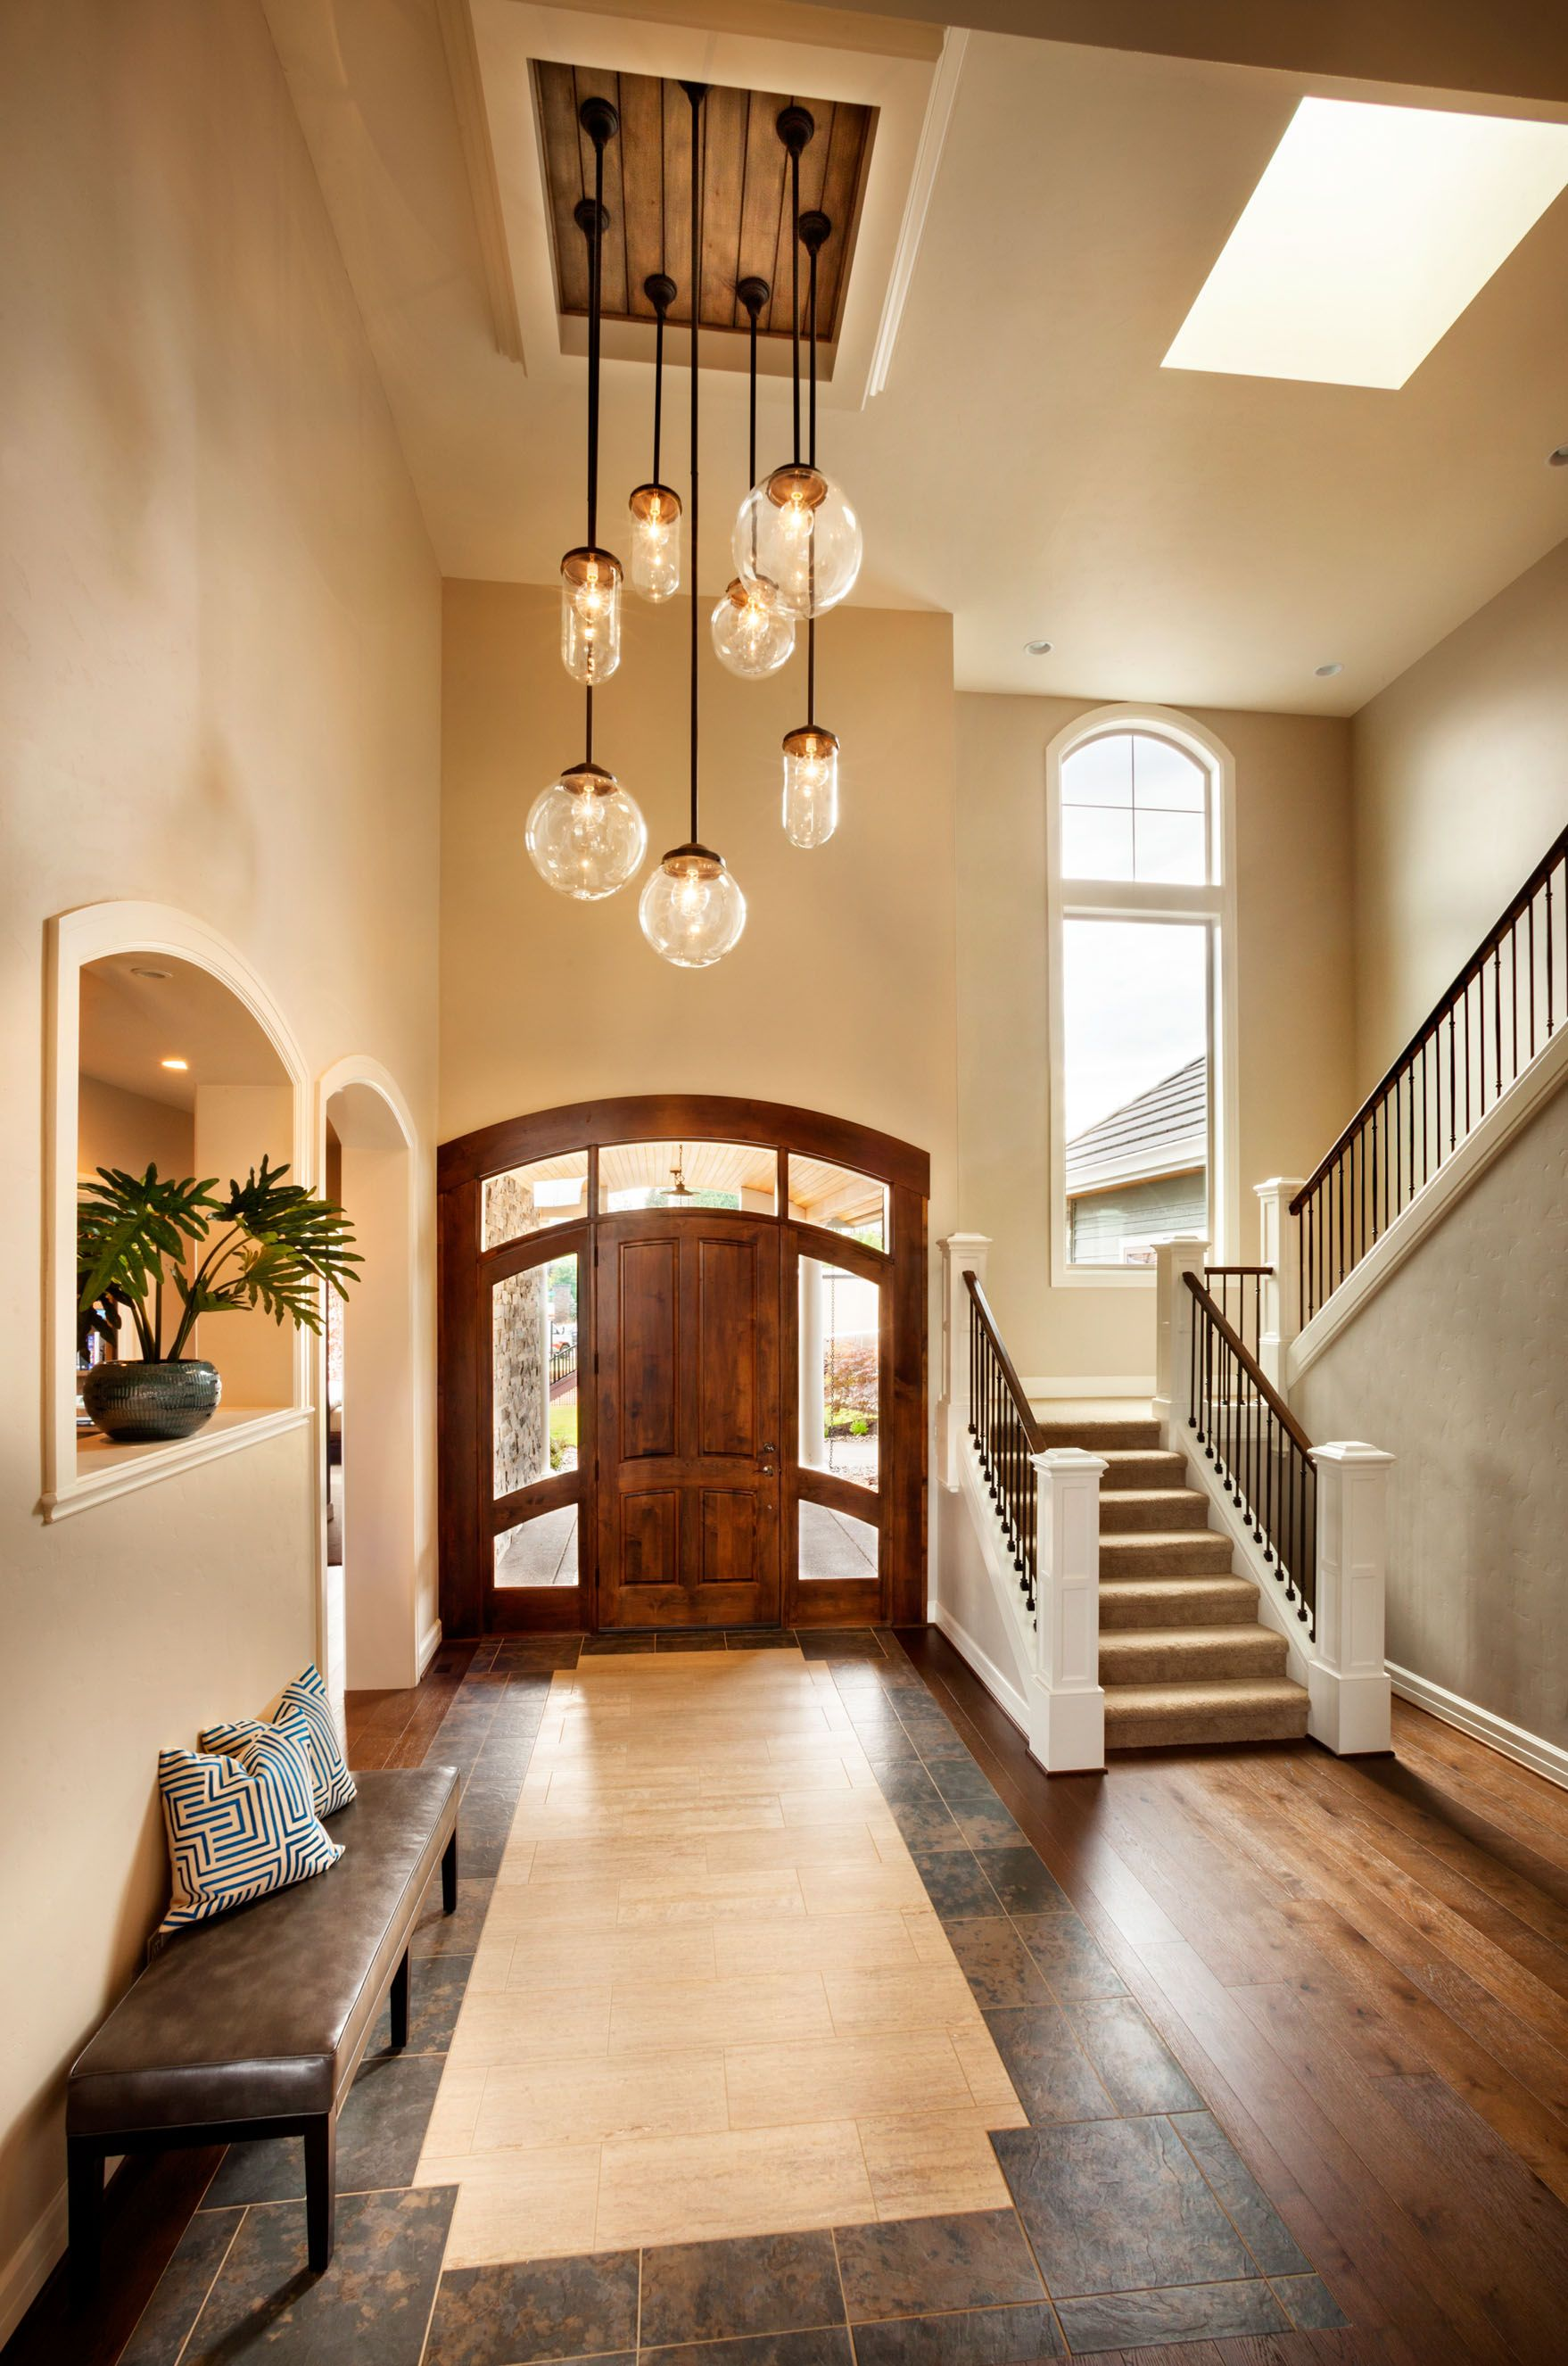 Large Entryway and Foyer Chandelier